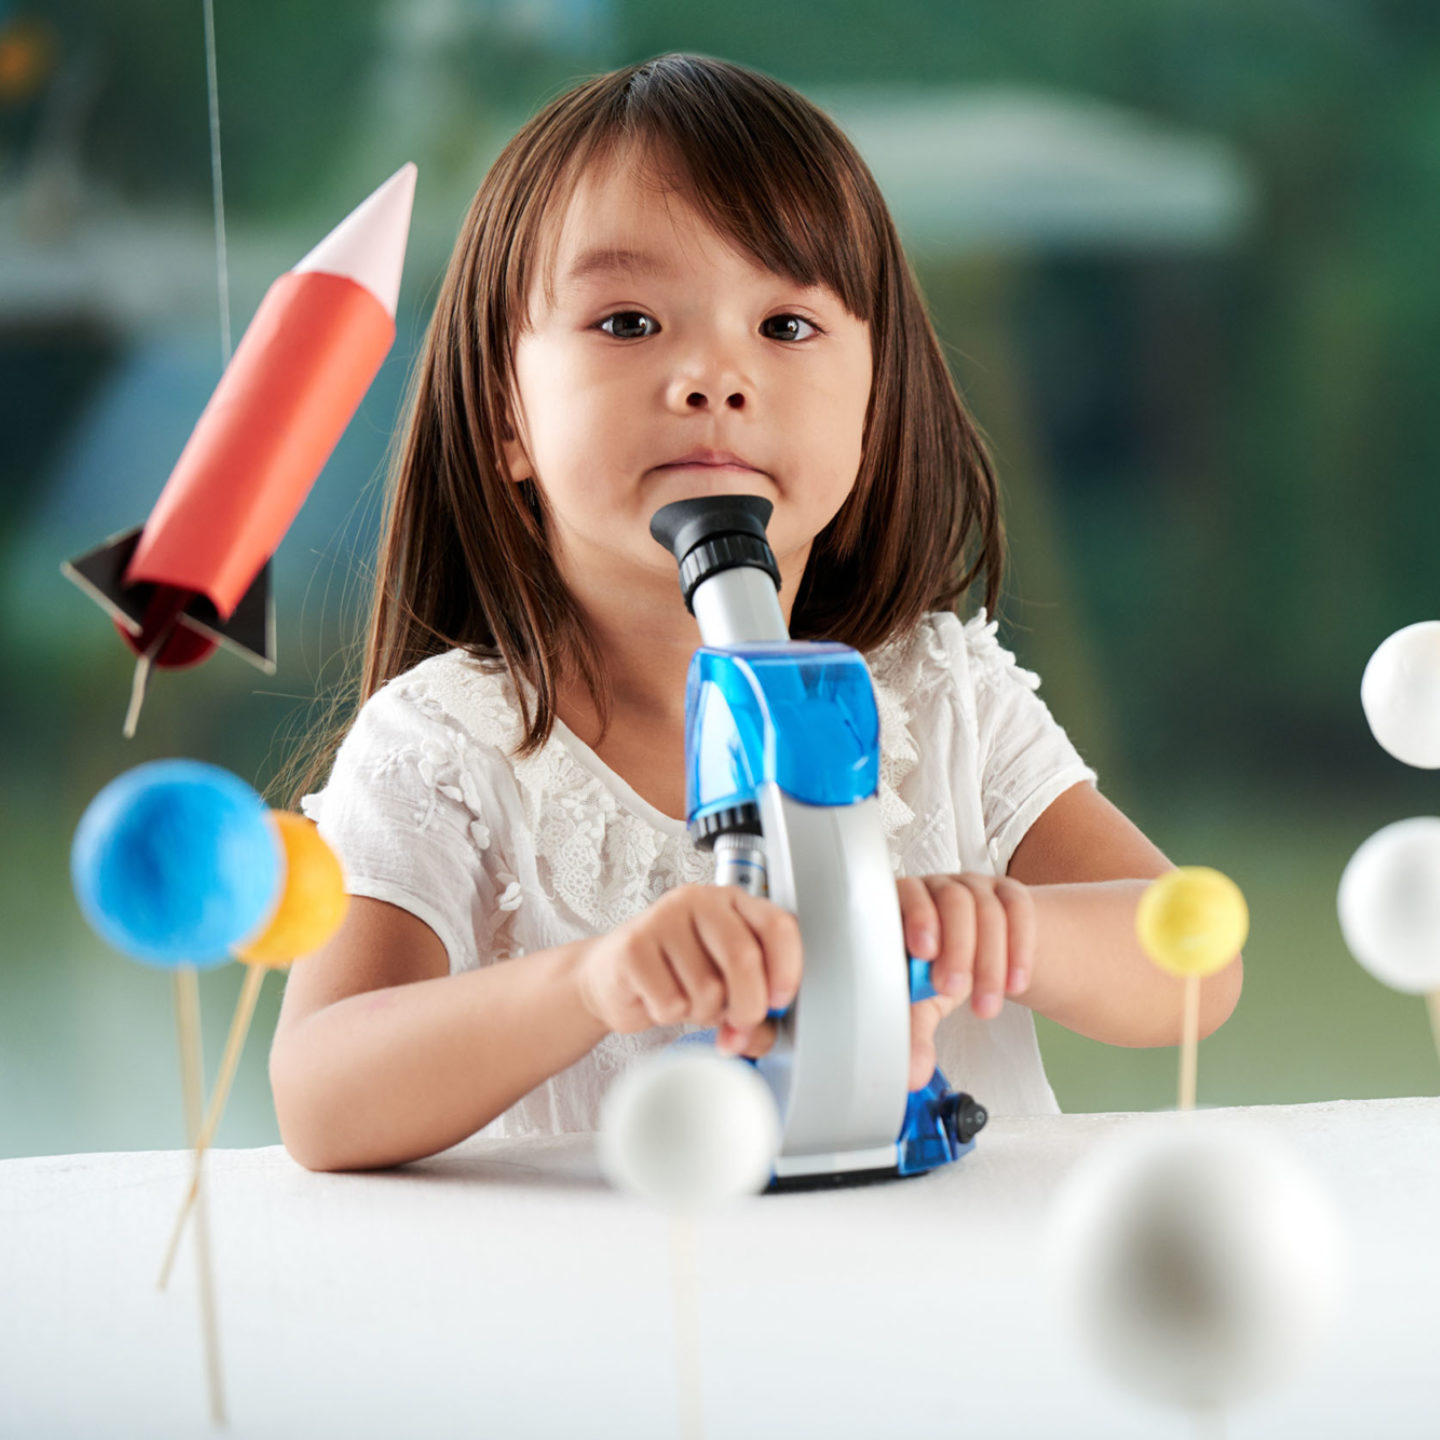 Child with microscope - Helping Clients Ensure Information Security | NSF International